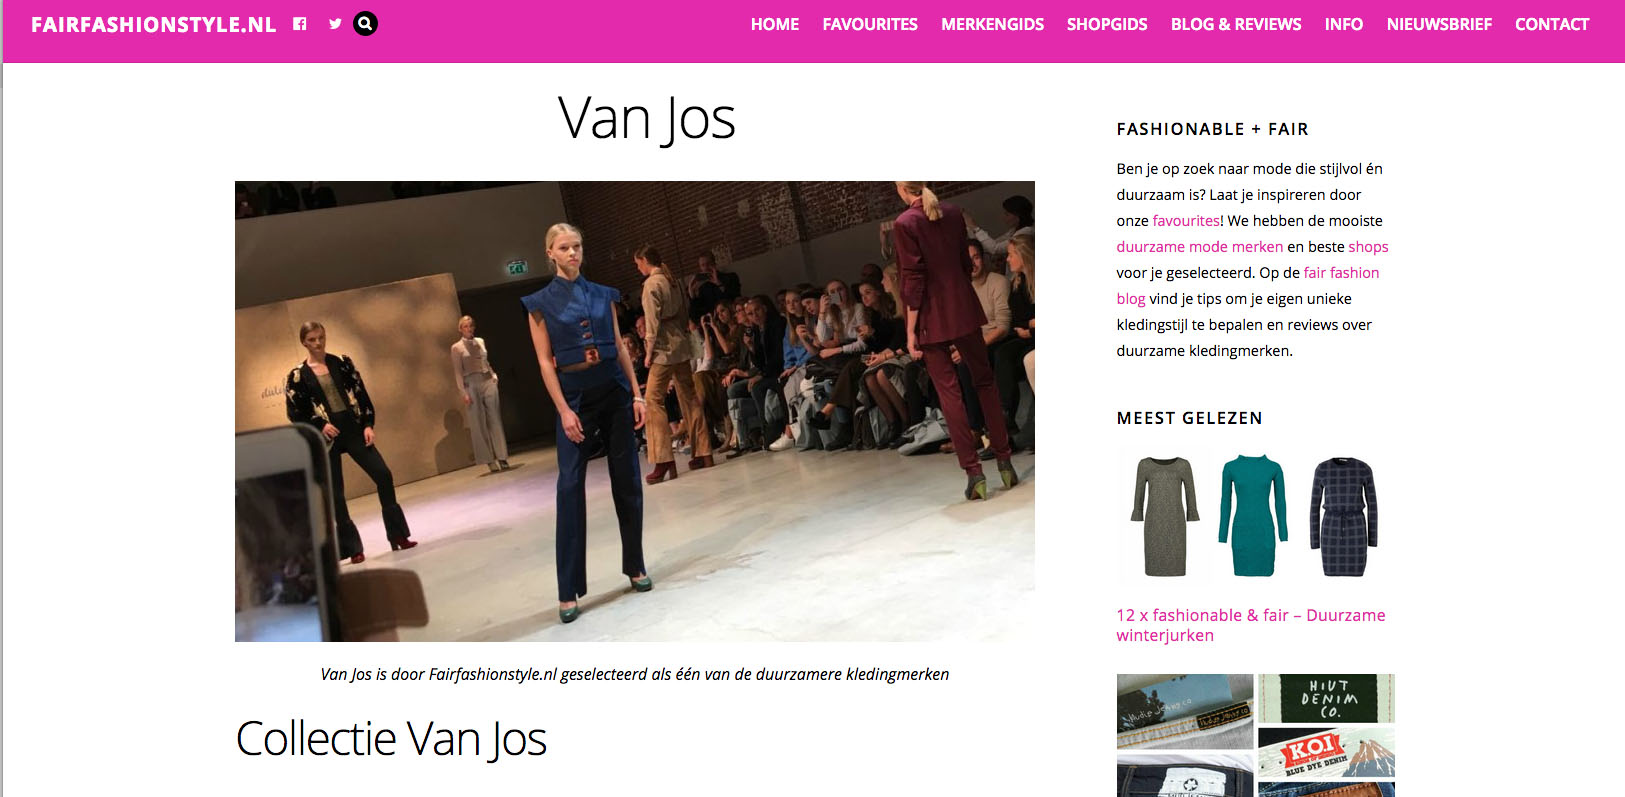 _Van Jos on FairFashionStyle 3